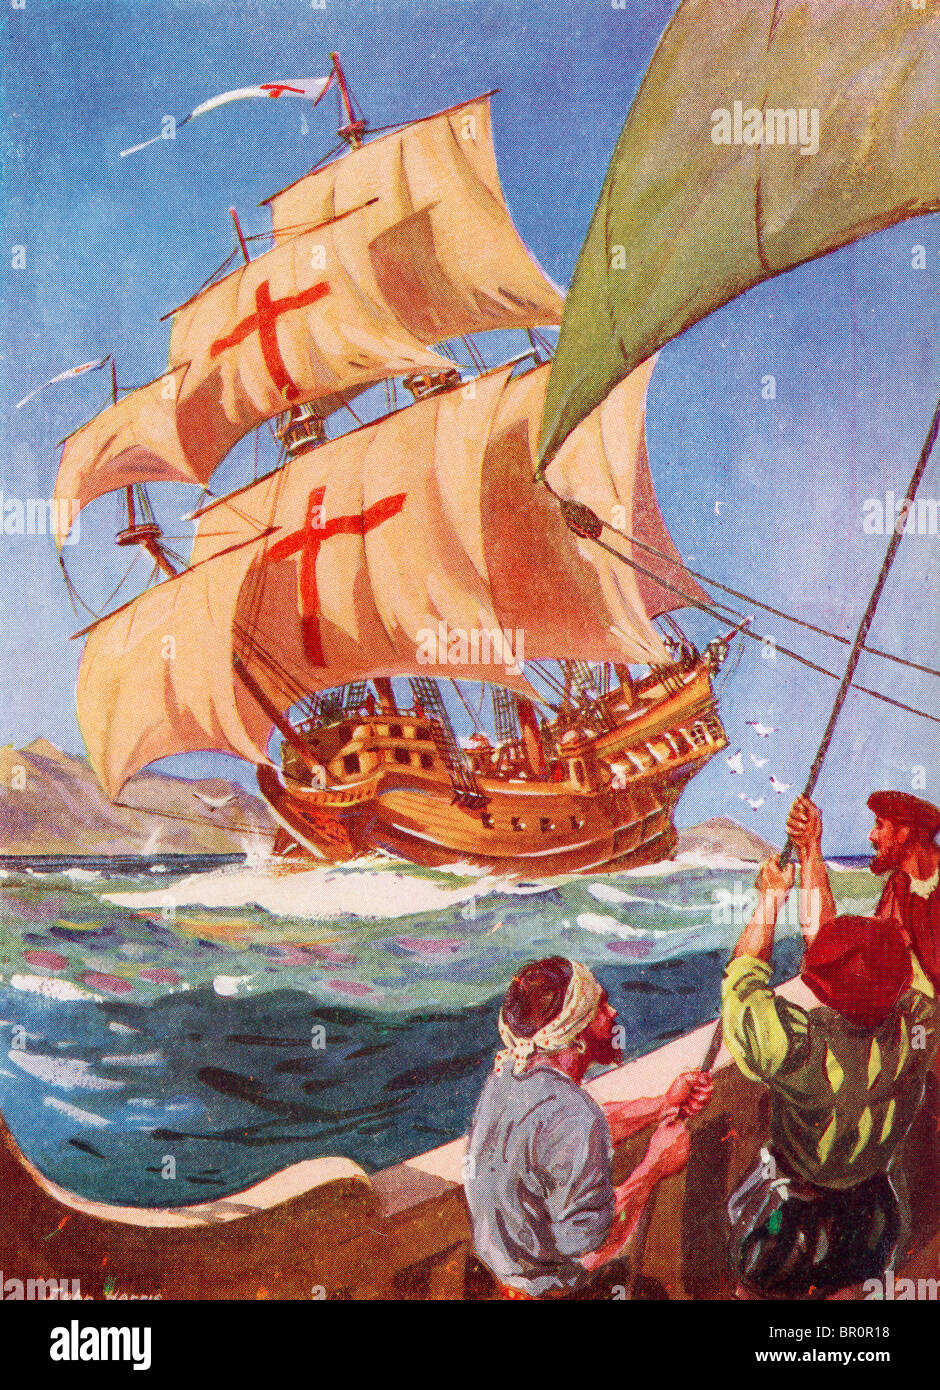 christopher columbus leaves the coast of spain in his flag ship